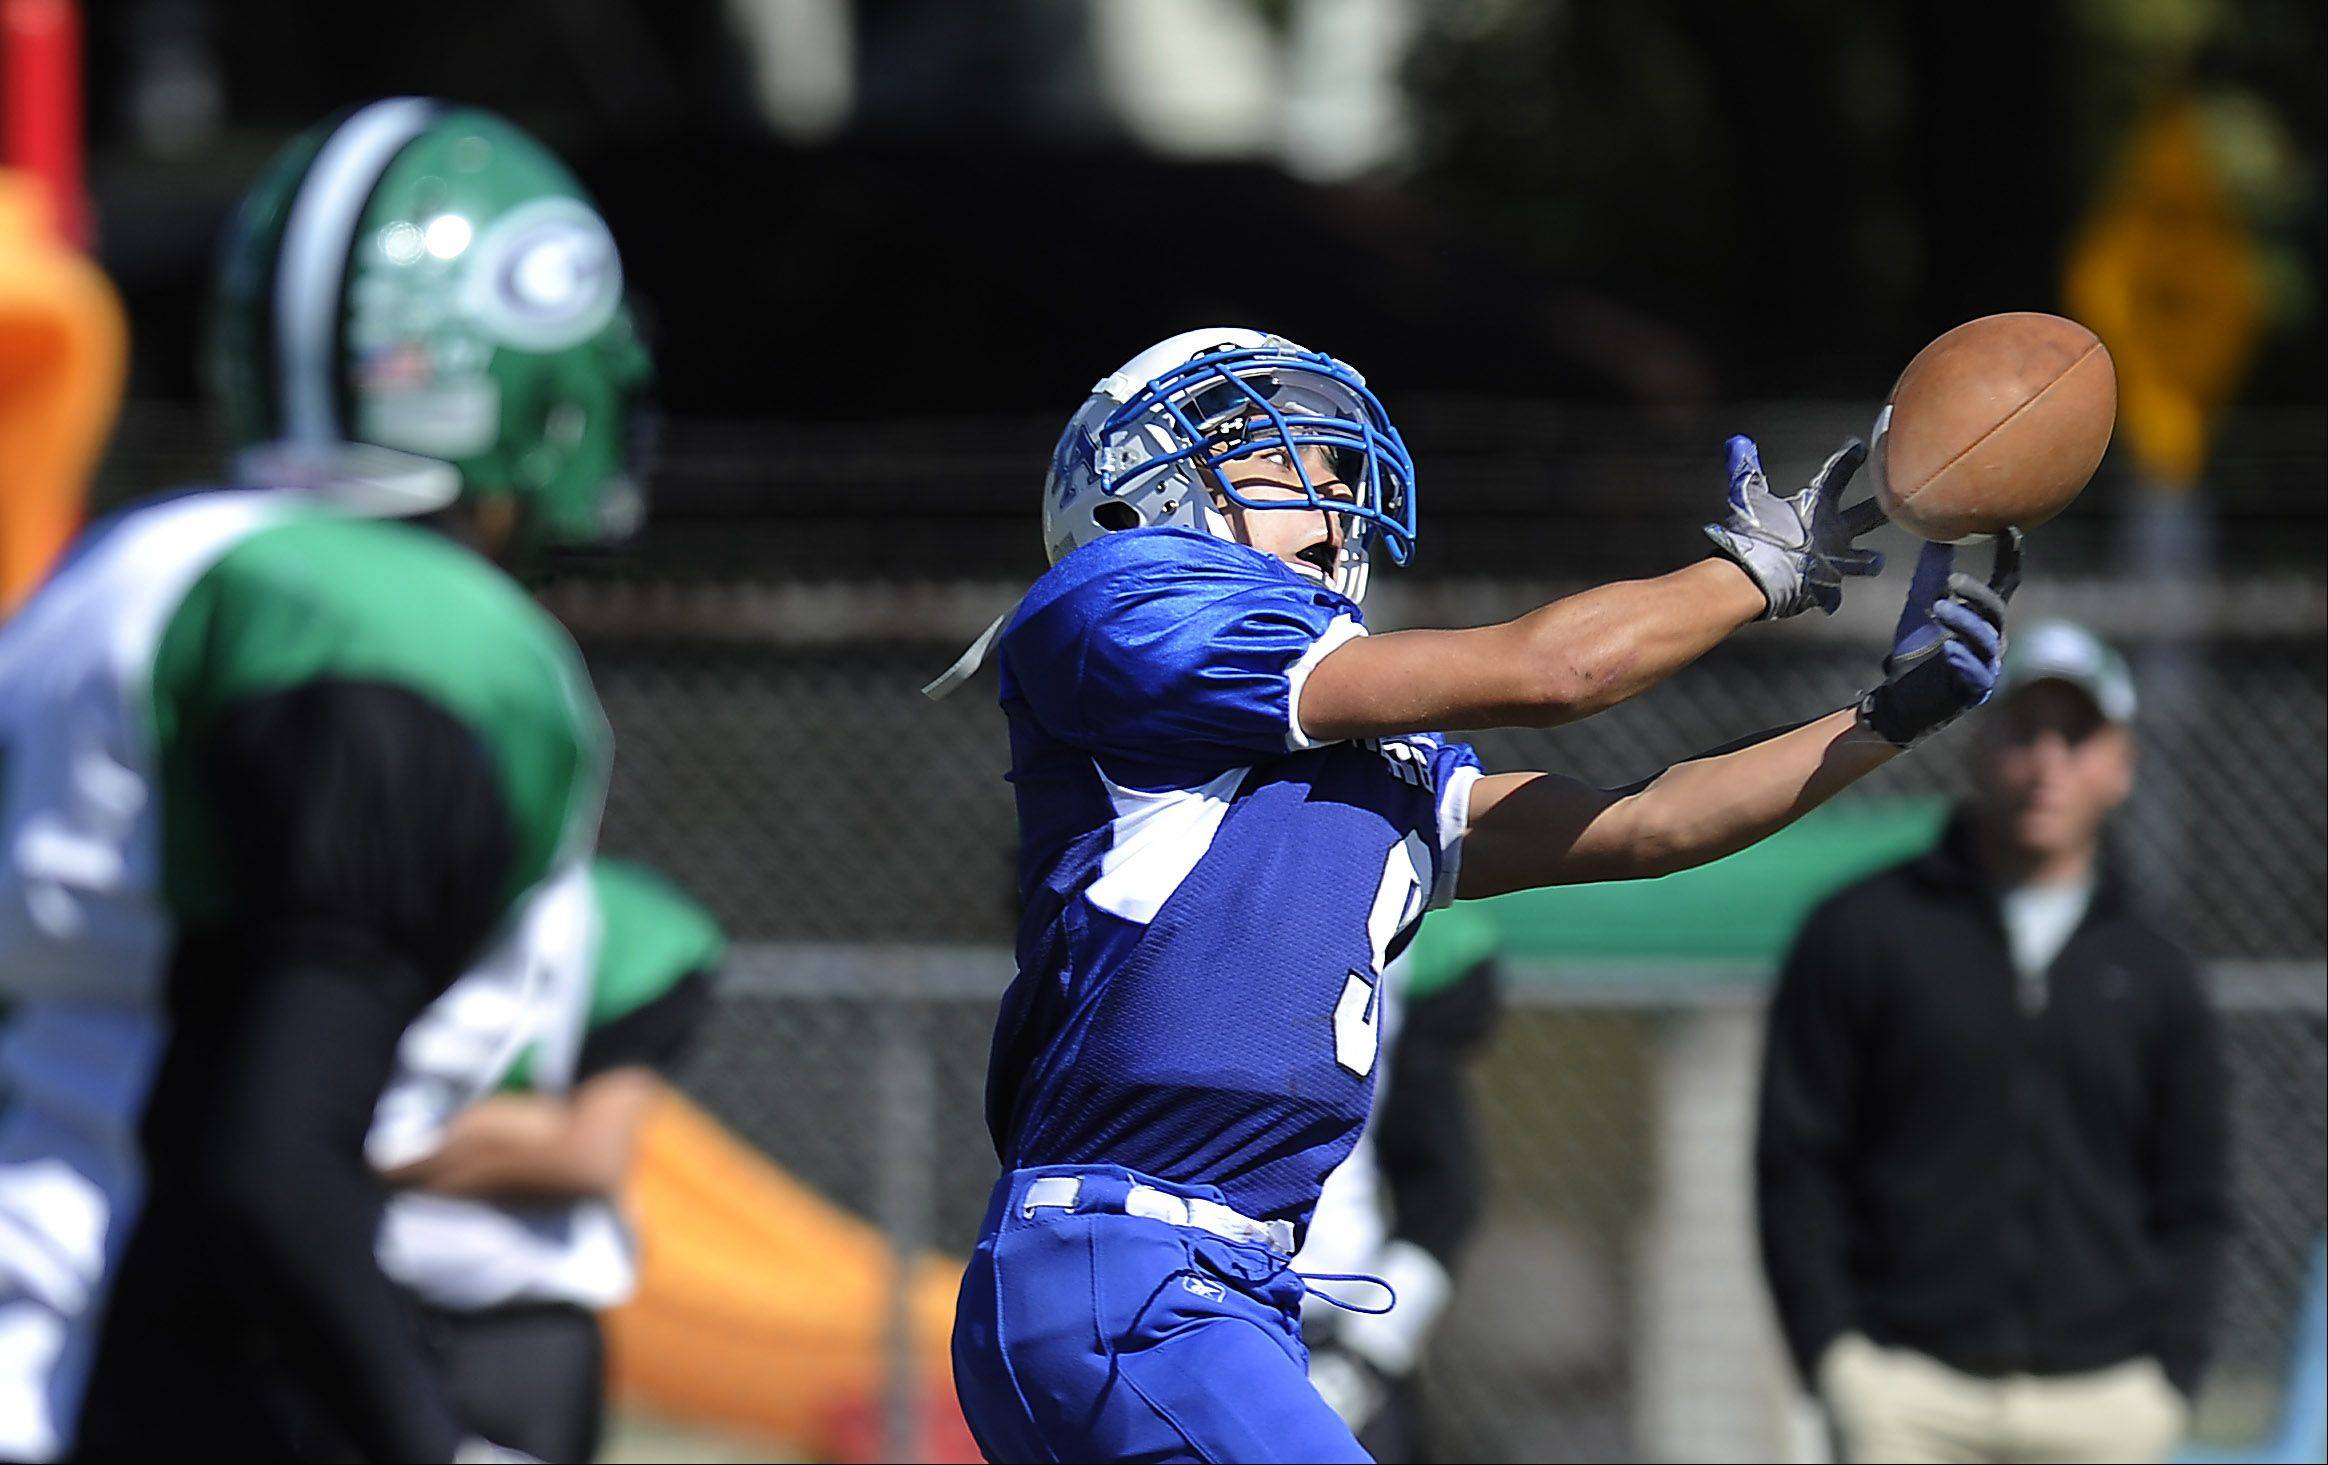 Christian Liberty wide receiver J D Dulinsky just misses a pass touching his fingertips late in the second quarter from the quarterback Gabe Grob in Saturday's game in Arlington Heights.